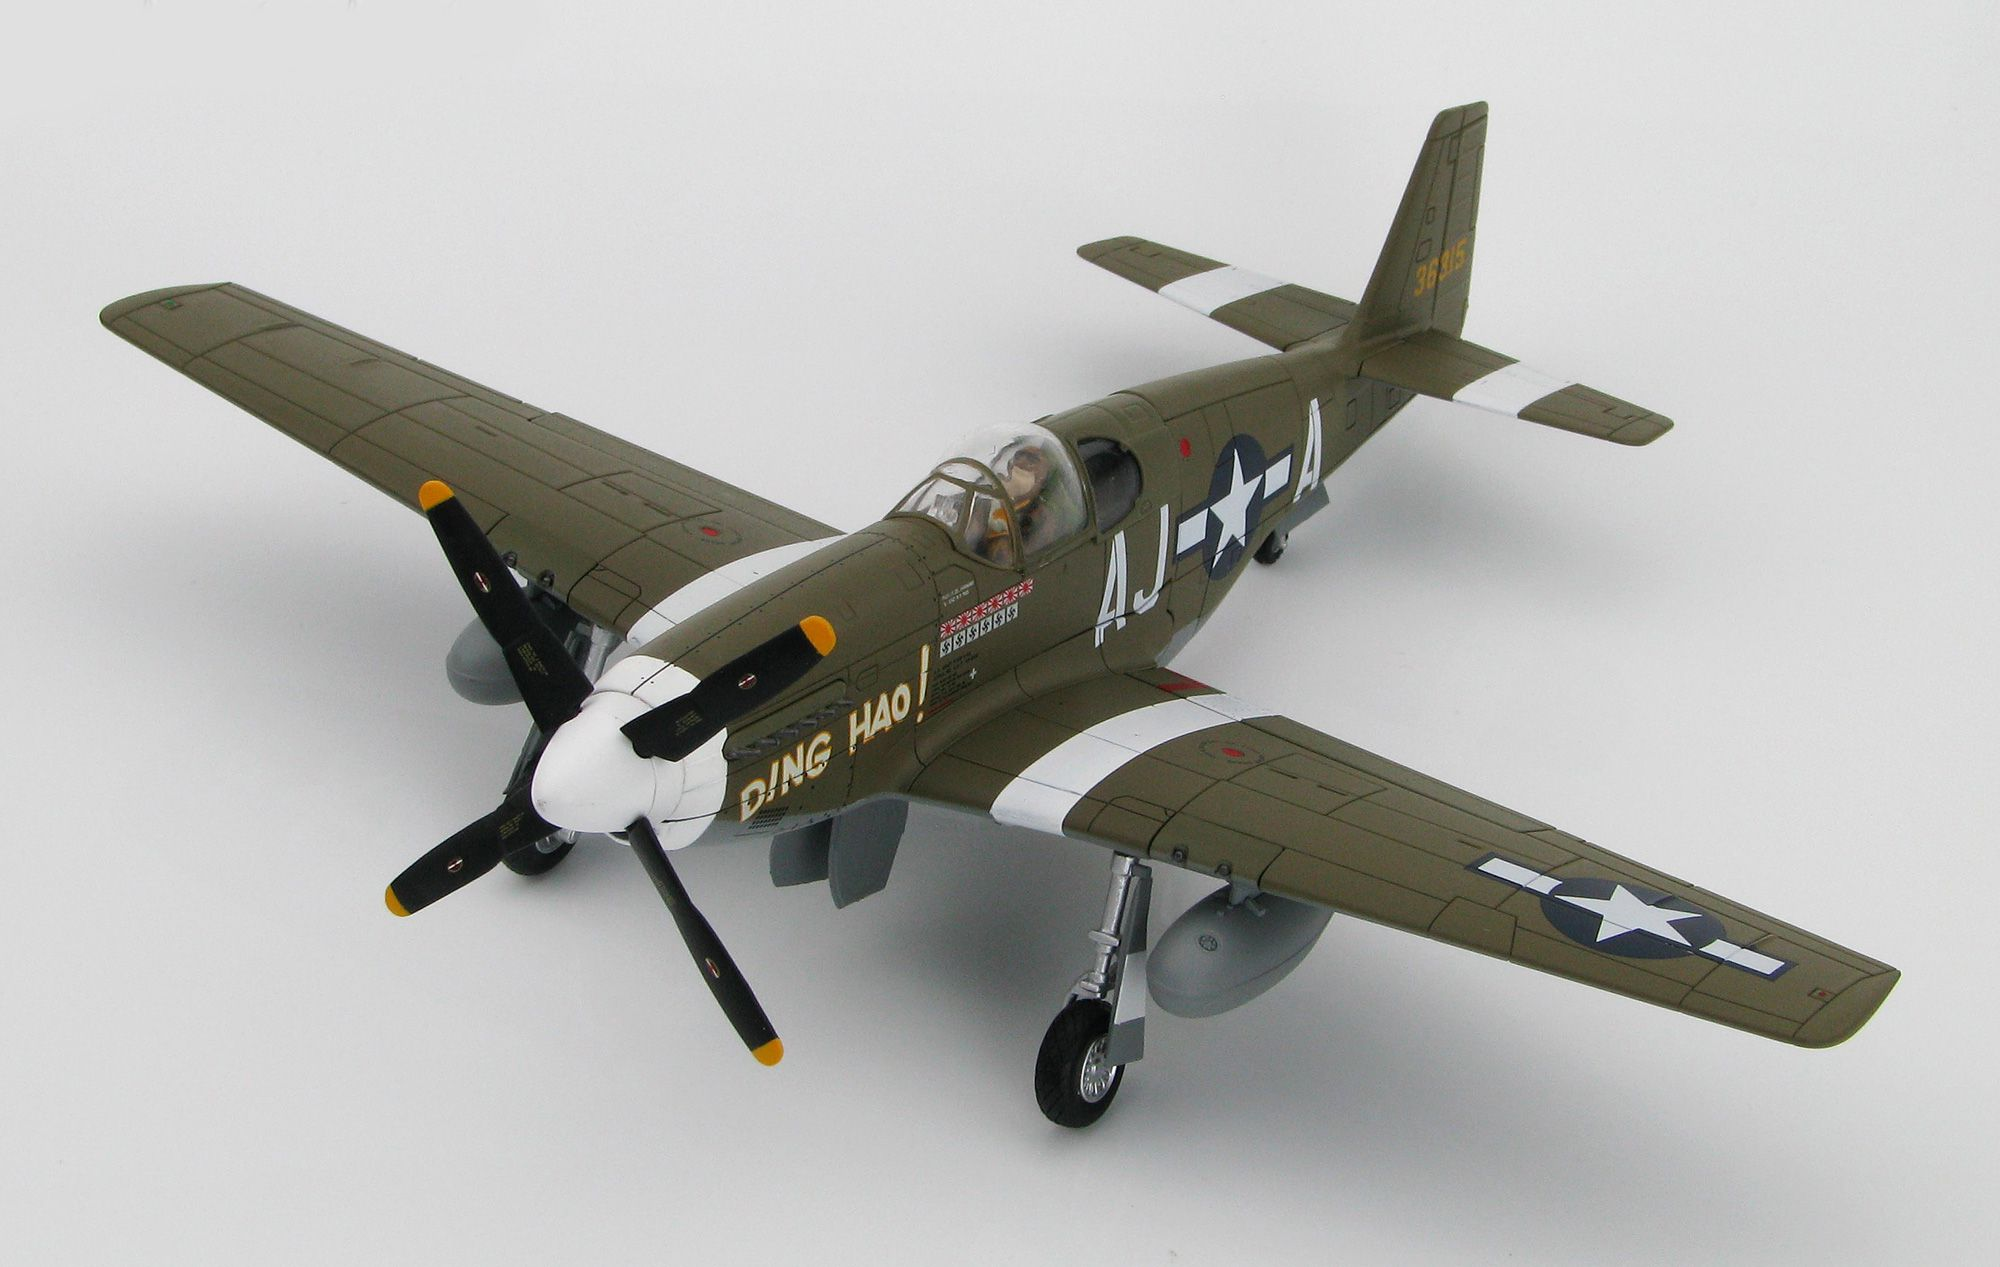 Picture Gallery for Hobby Master HA8508 North American P-51B Mustang 43-6315 Ding Hao (USAAF 487 FS